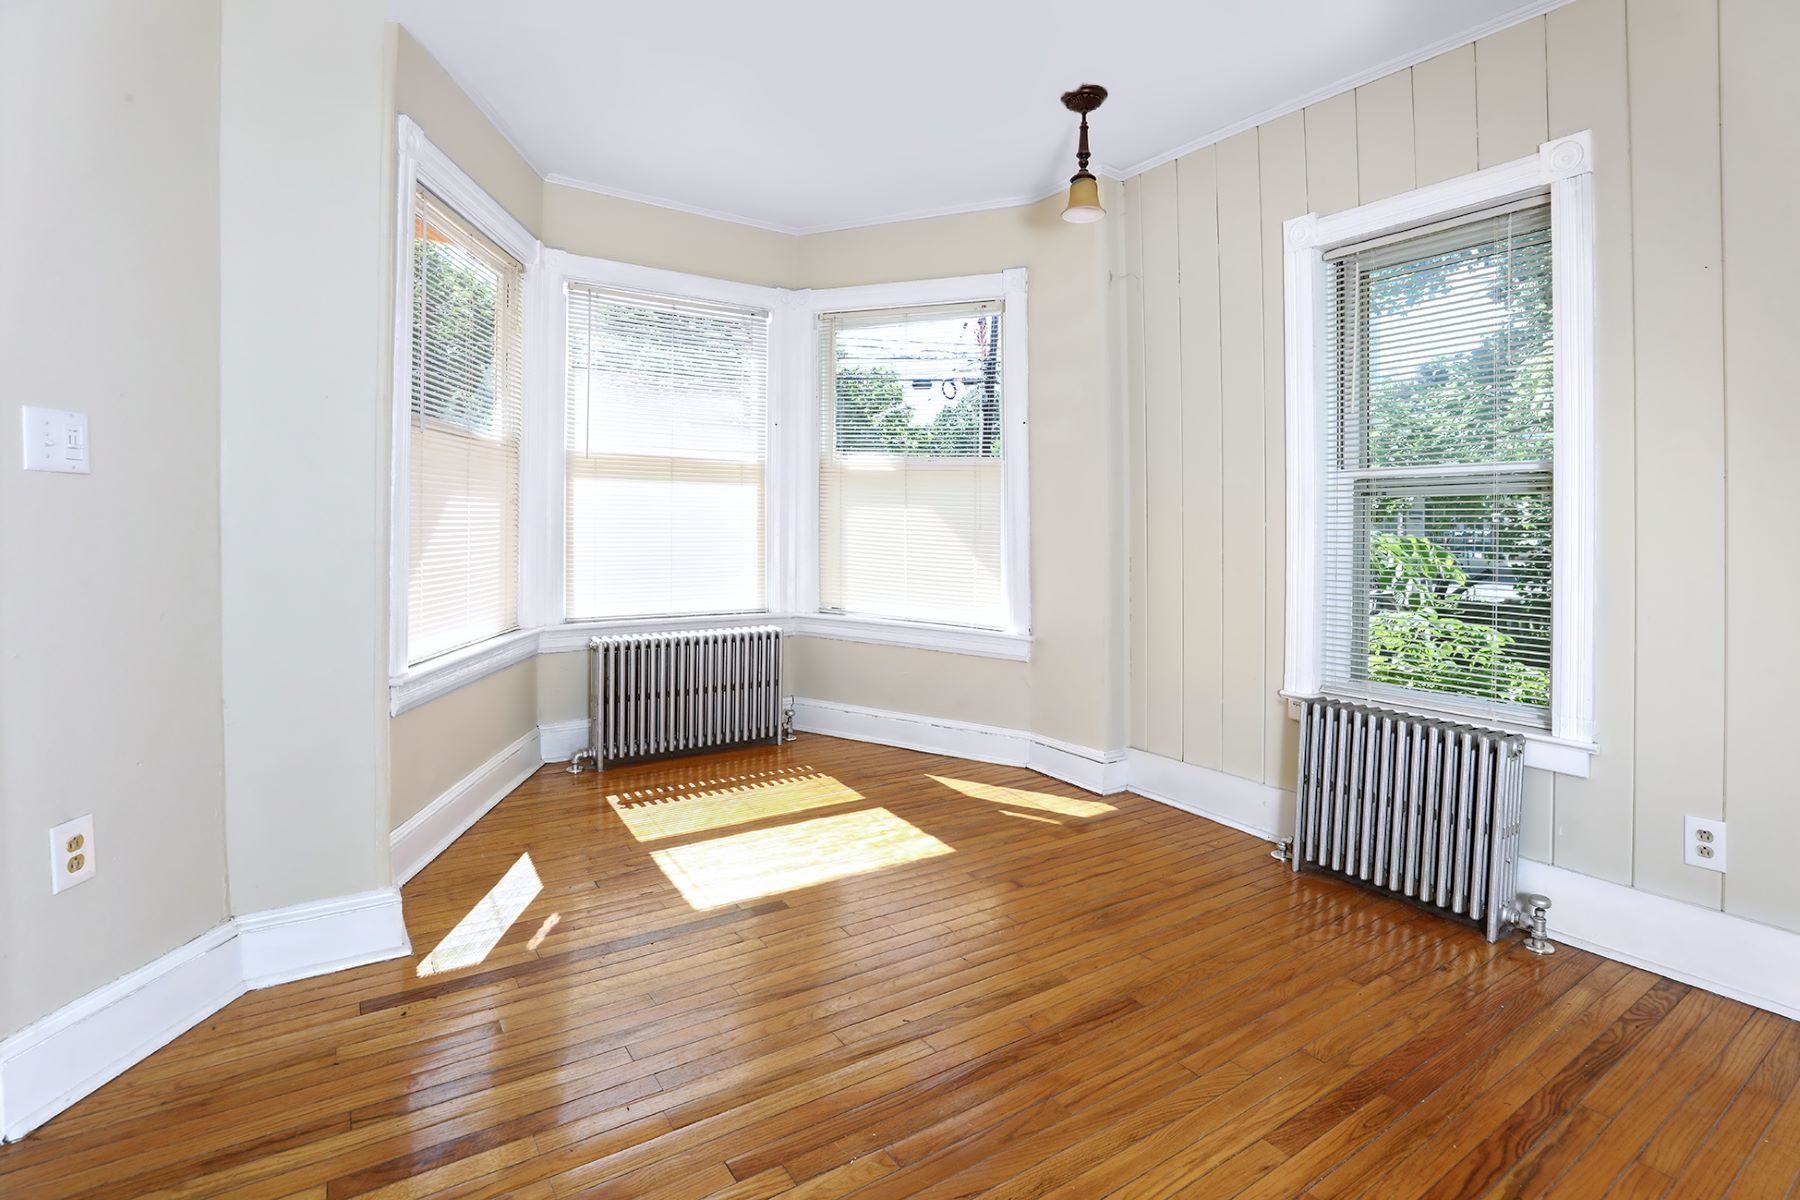 Additional photo for property listing at In The Heart Of It All 36 South Union Street Lambertville, ニュージャージー 08530 アメリカ